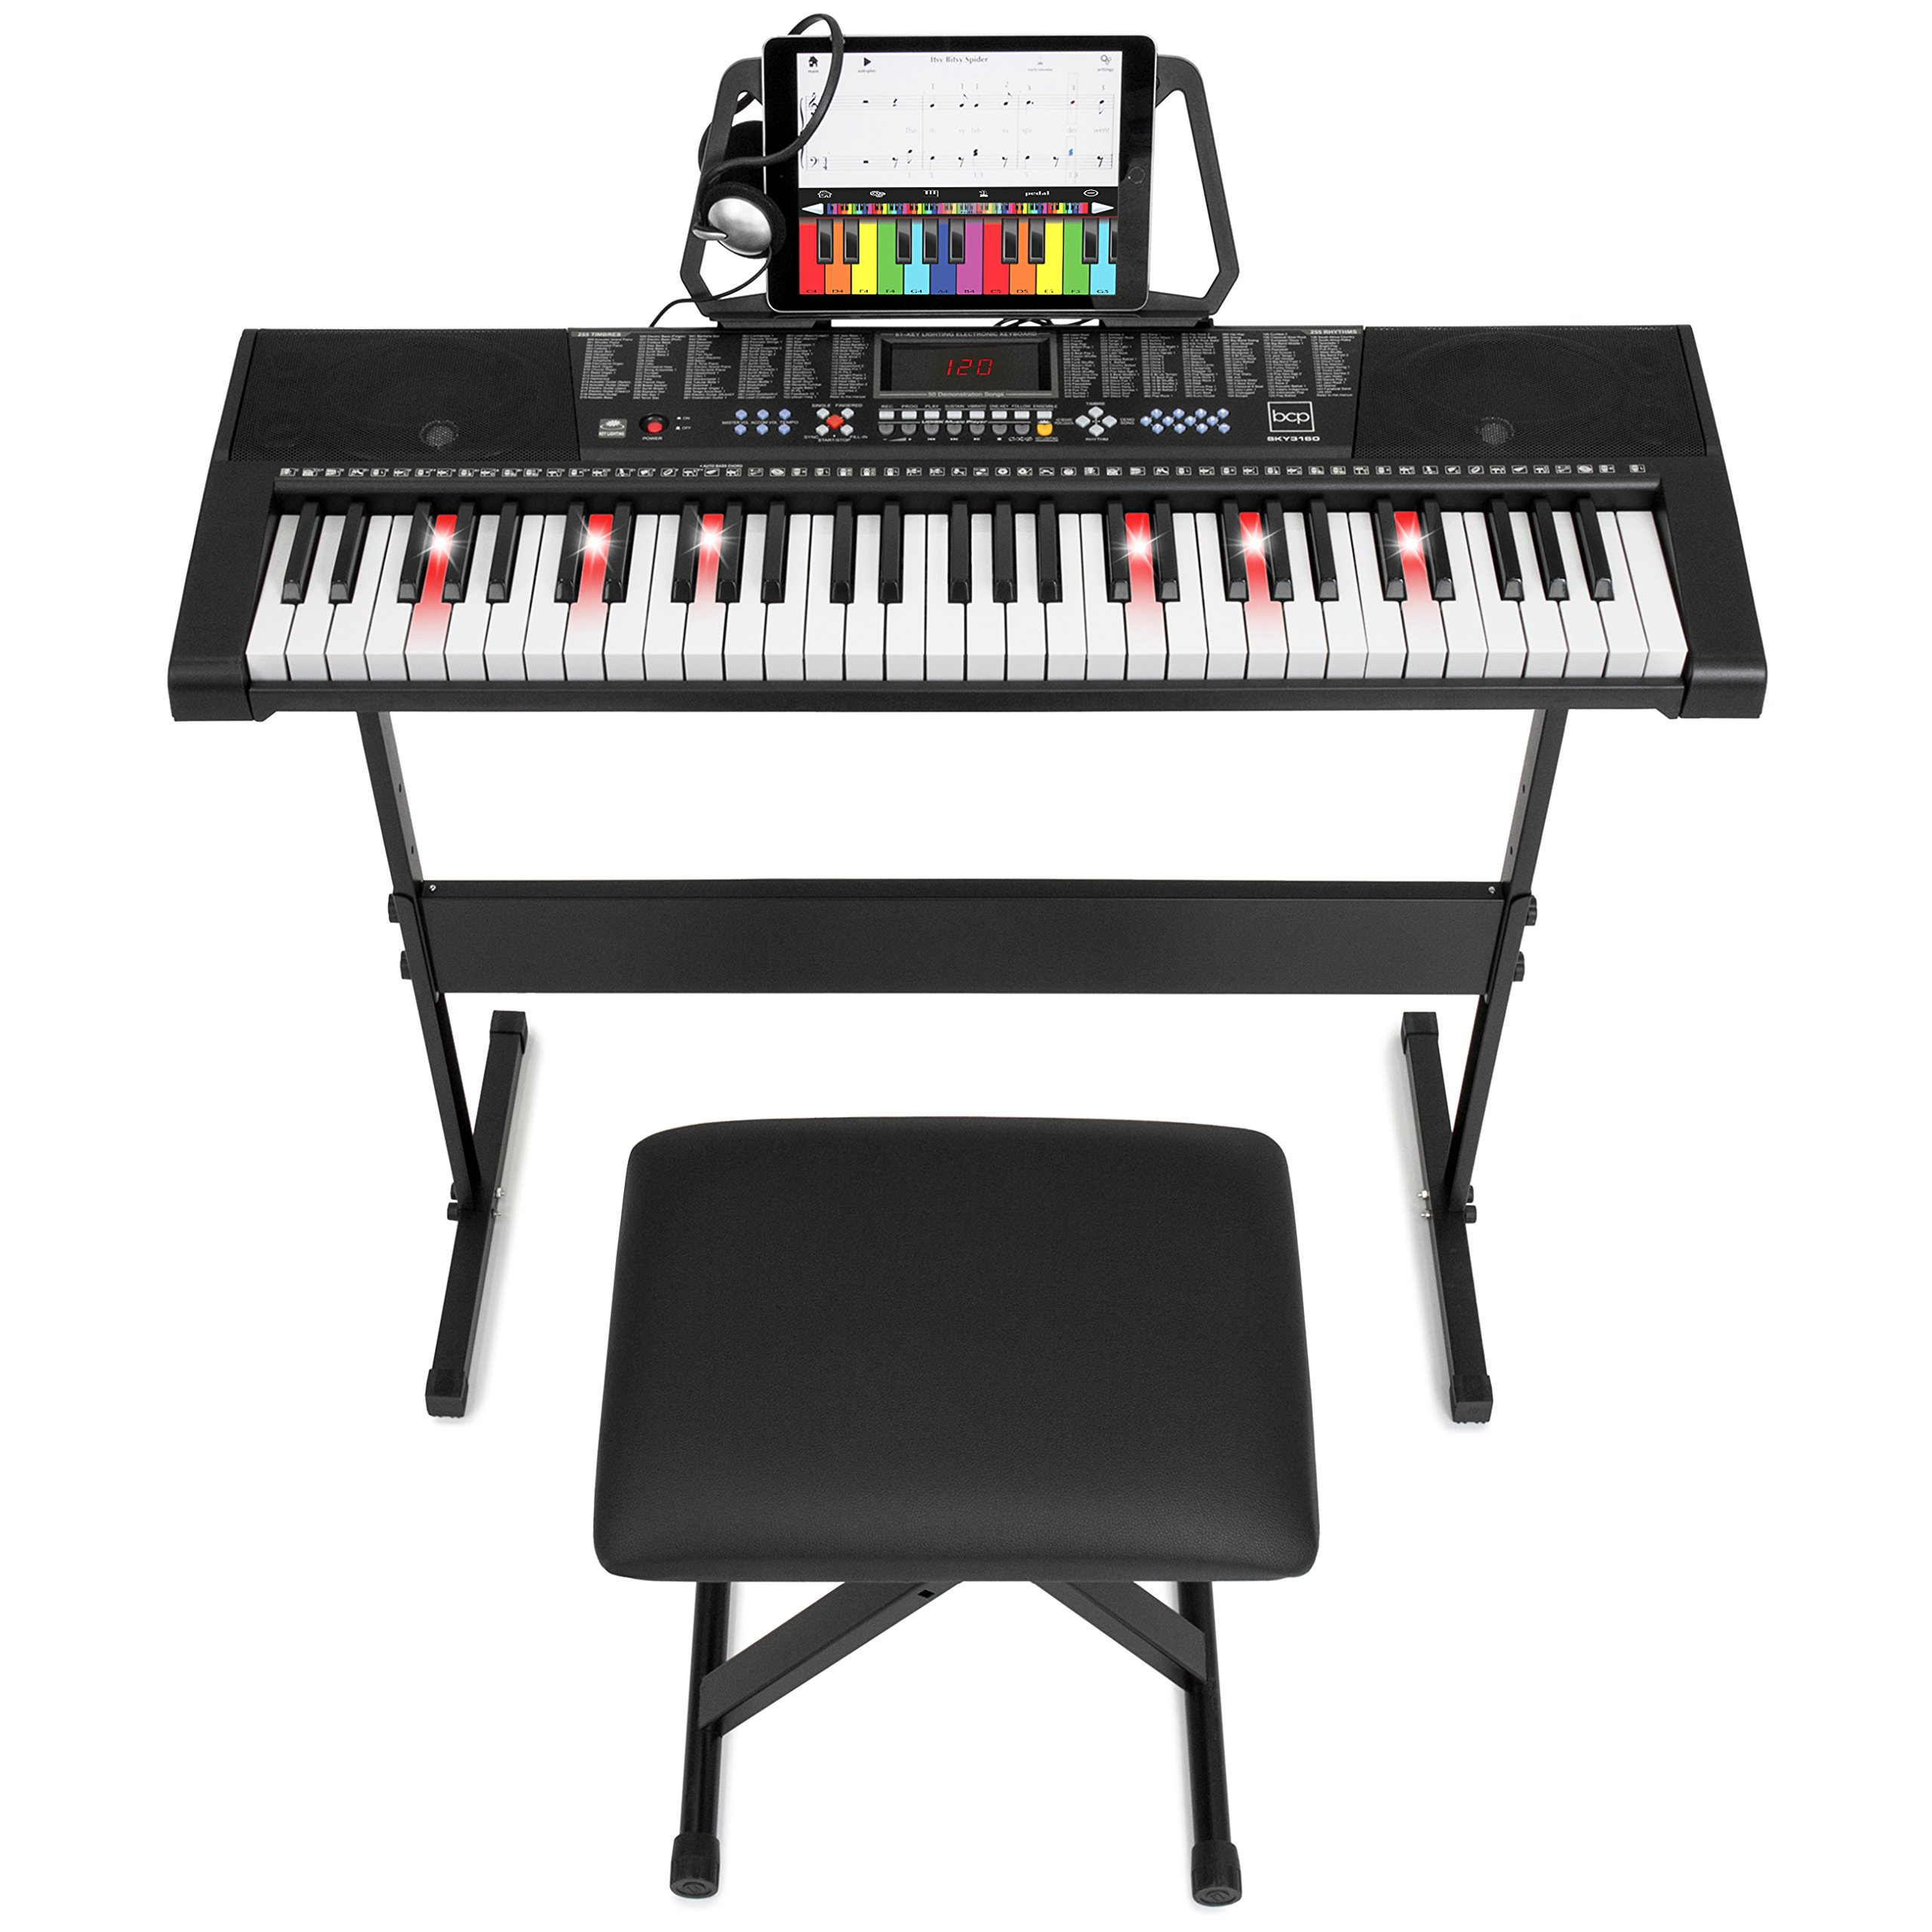 Best Choice Products Teaching Electronic Keyboard Piano Set, 61-Key w/ Adjustable H-Stand, Stool (Black) (Keyboard w/ Headphones) by Best Choice Products